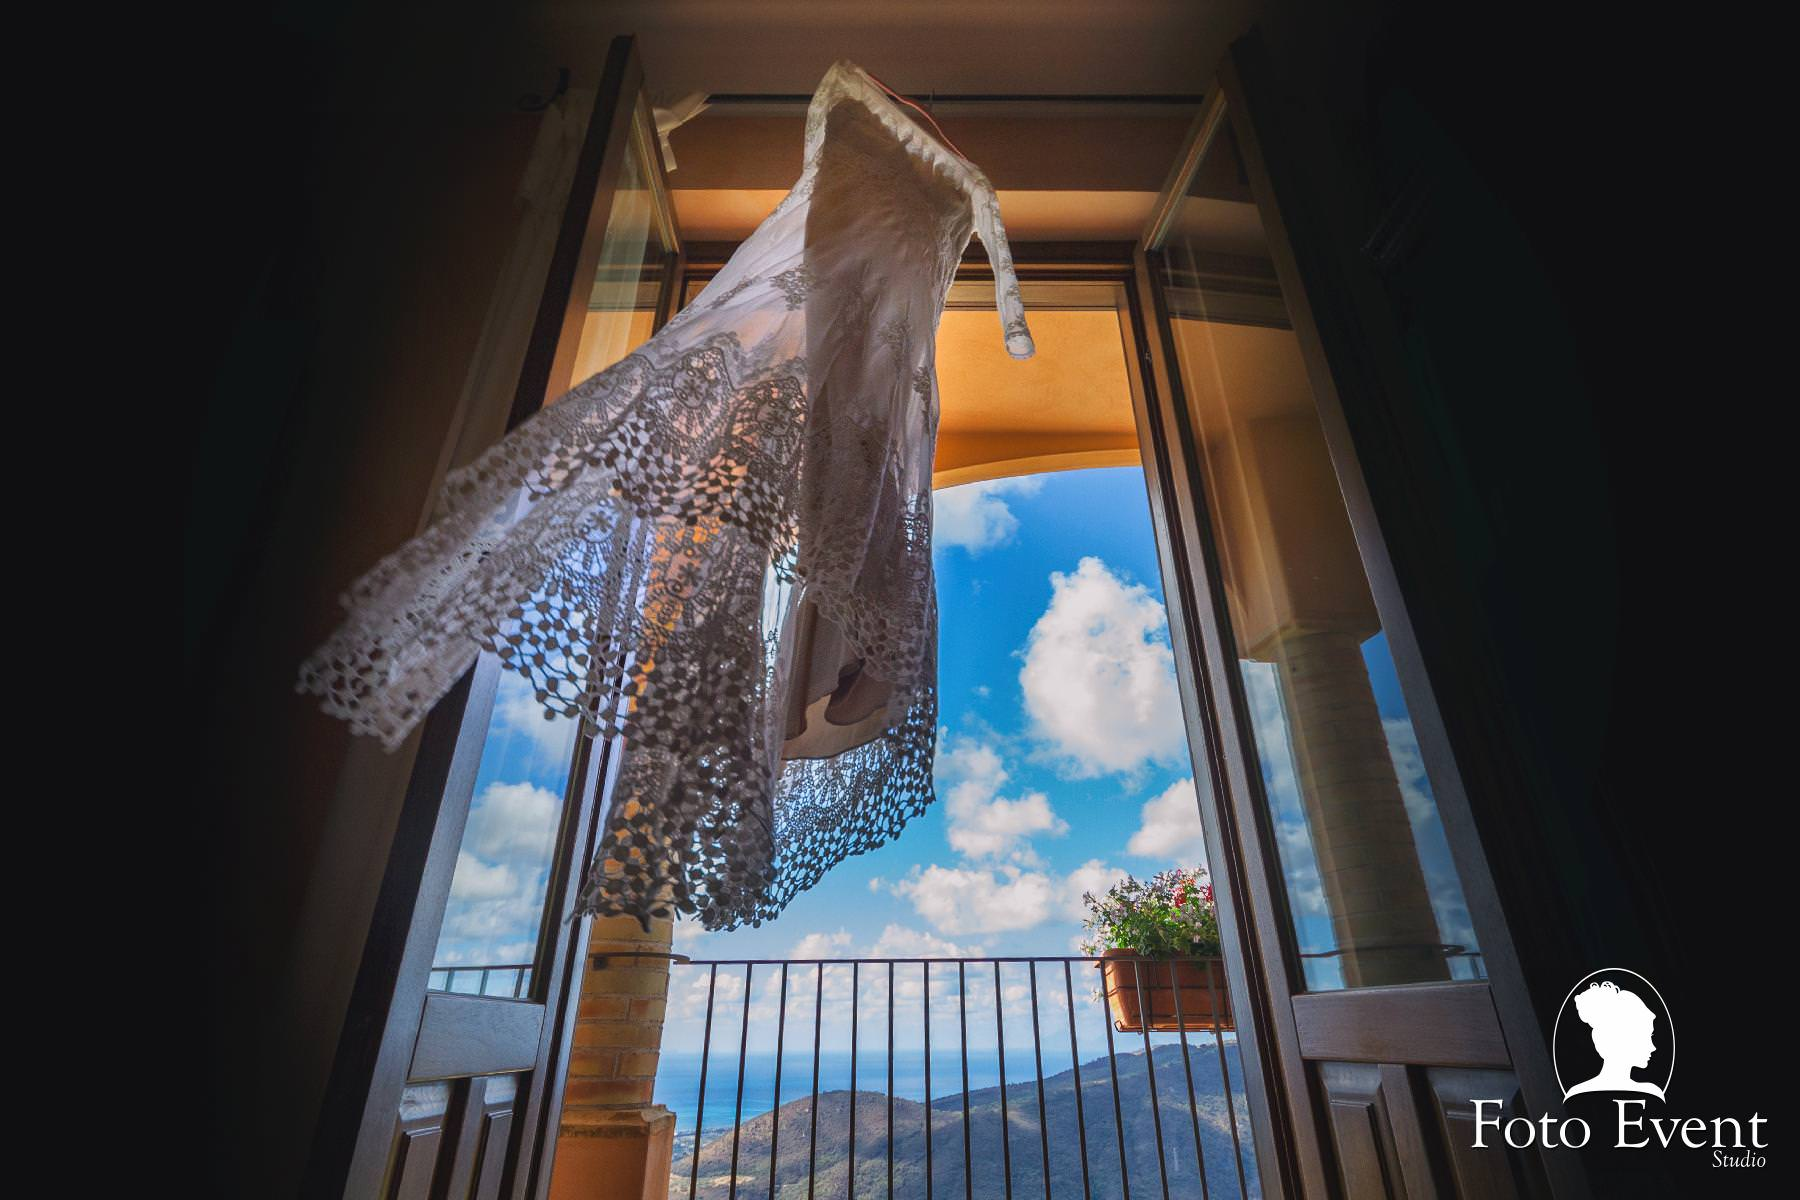 Destination wedding sicily Elisa Bellanti Foto Event Studio 203